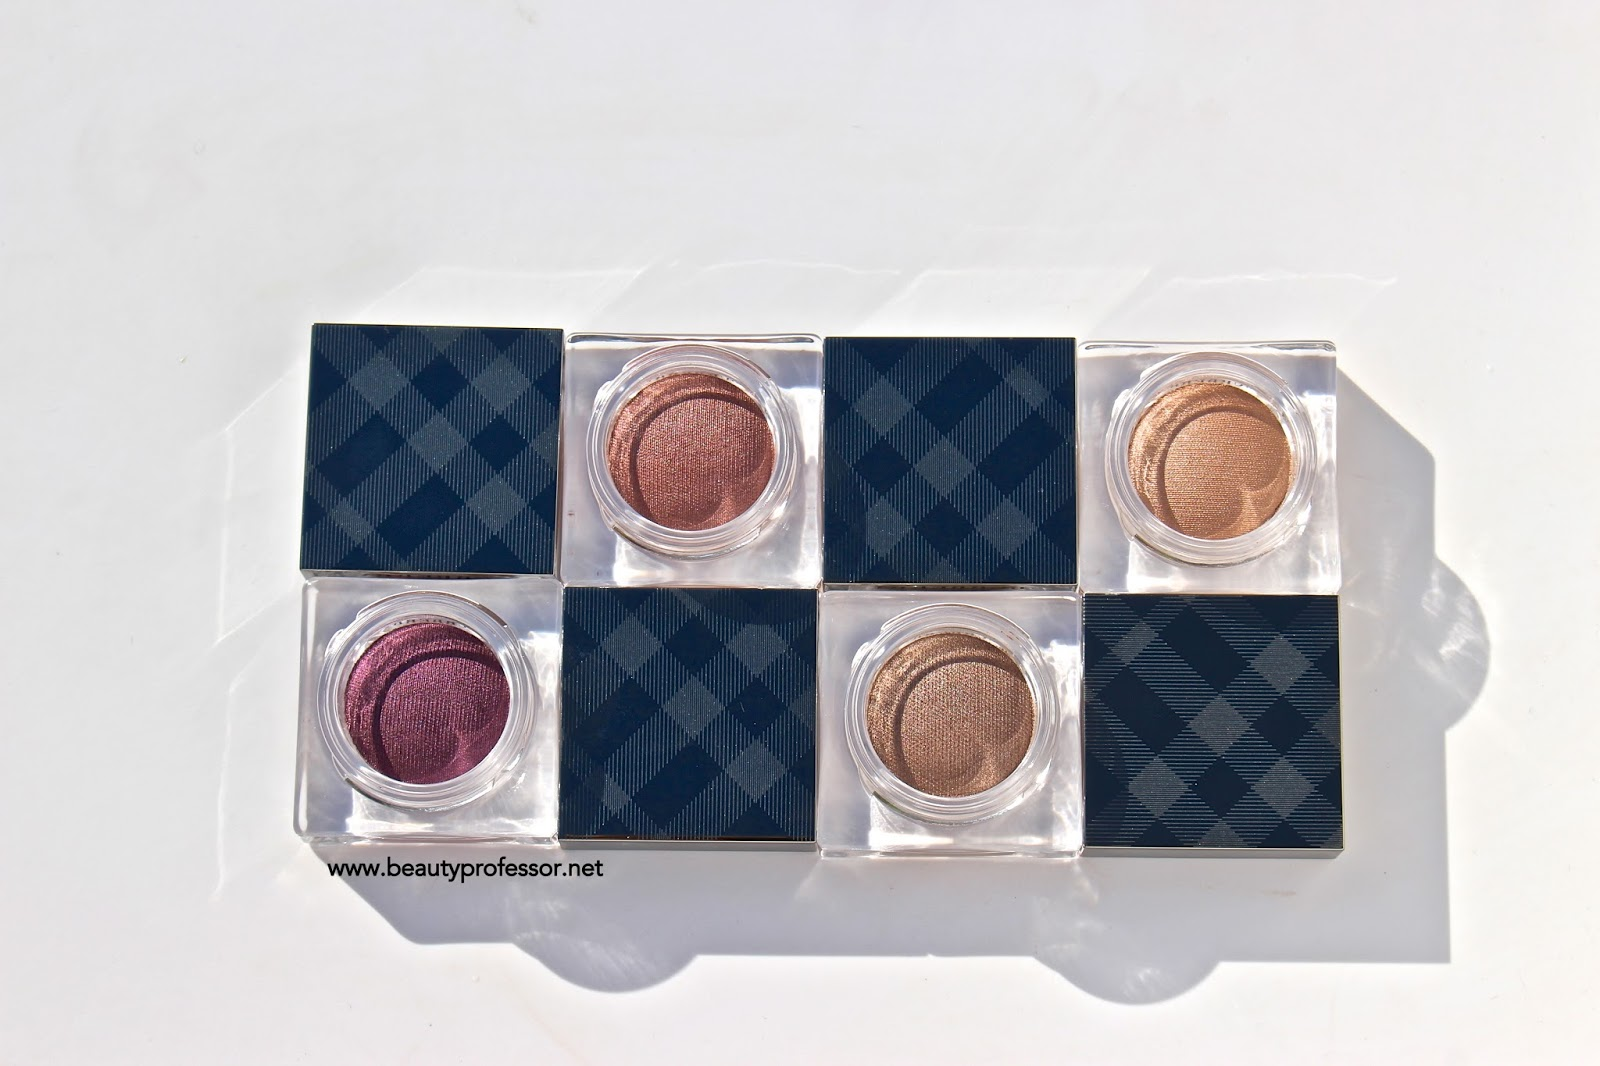 fbd09491fa1 Review  Burberry Eye Colour Cream + an End of Summer Look